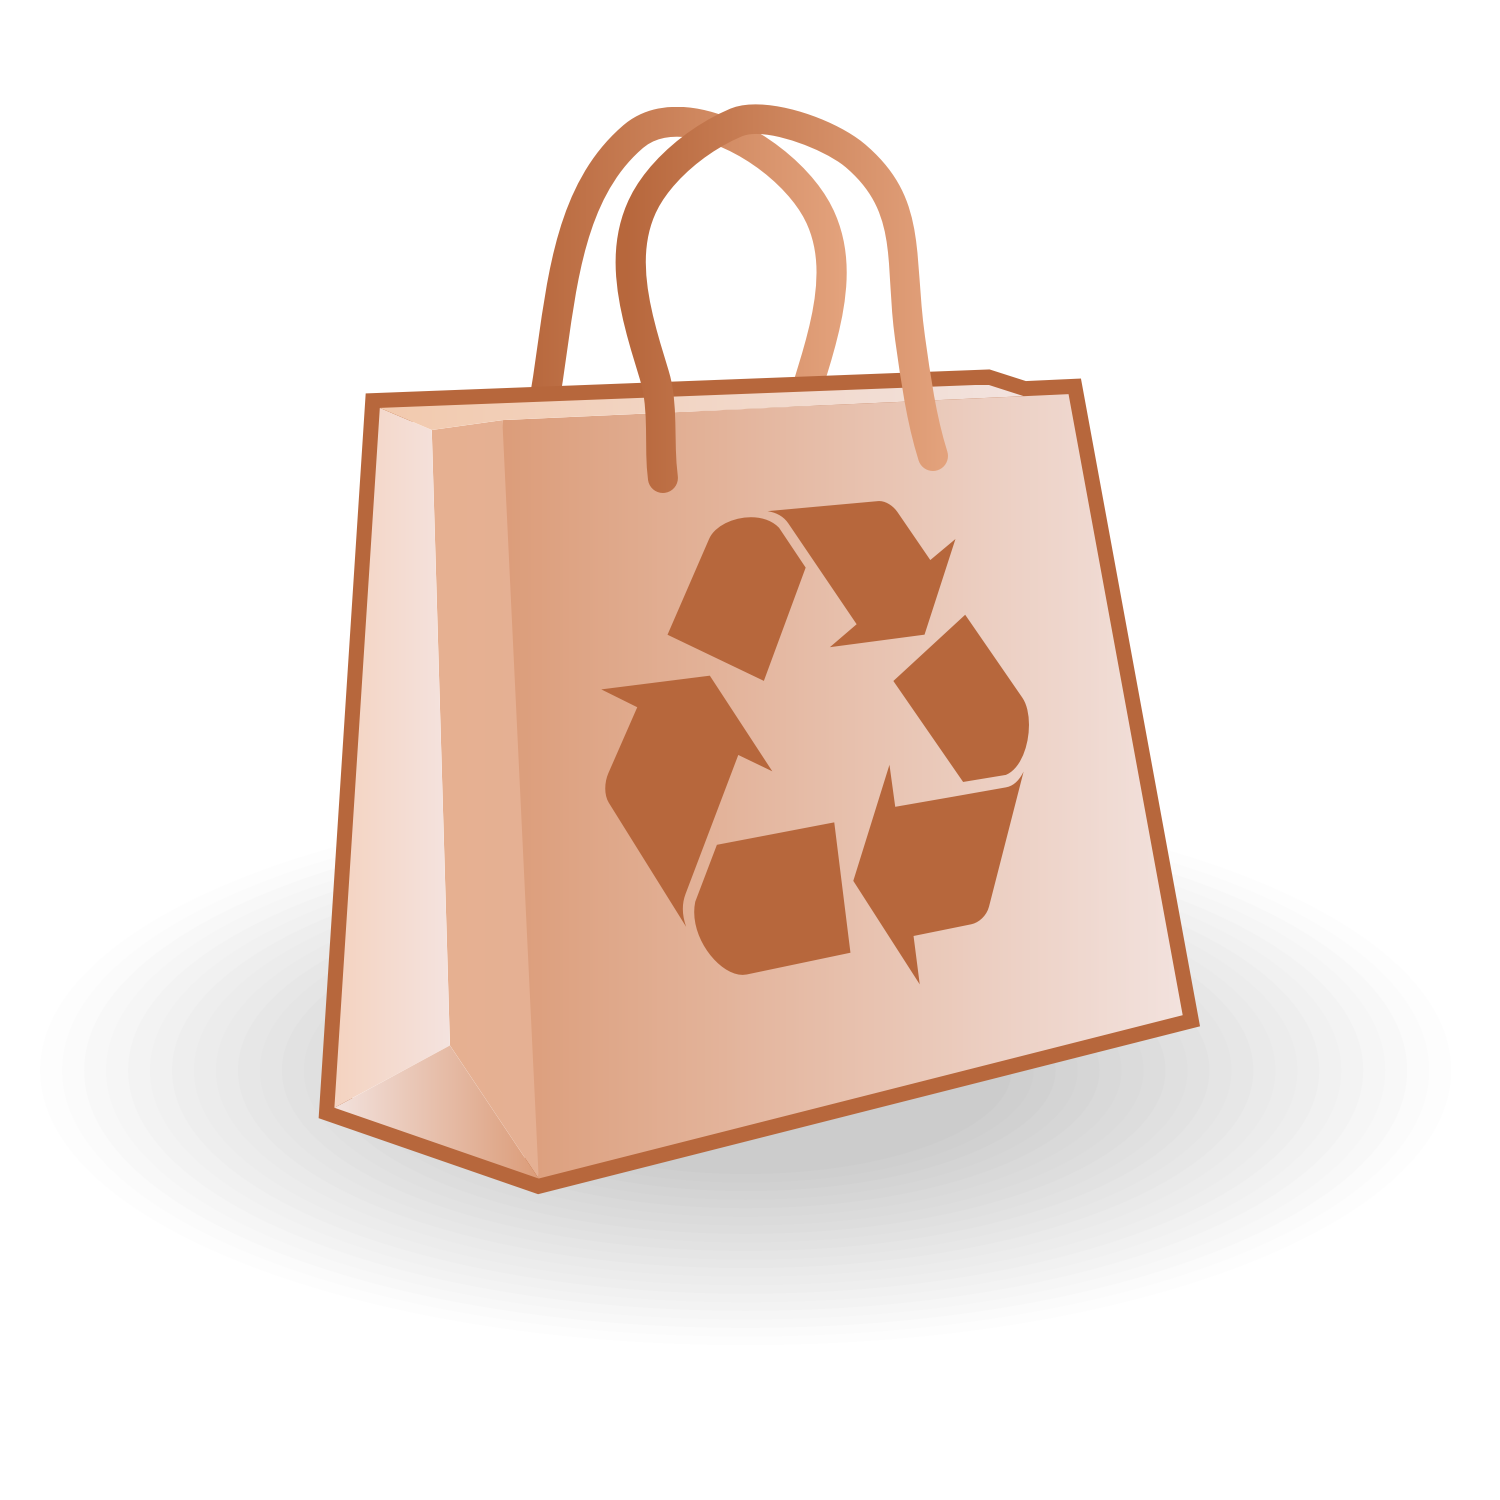 Paper bag with recycle sign. Free vector illustration.